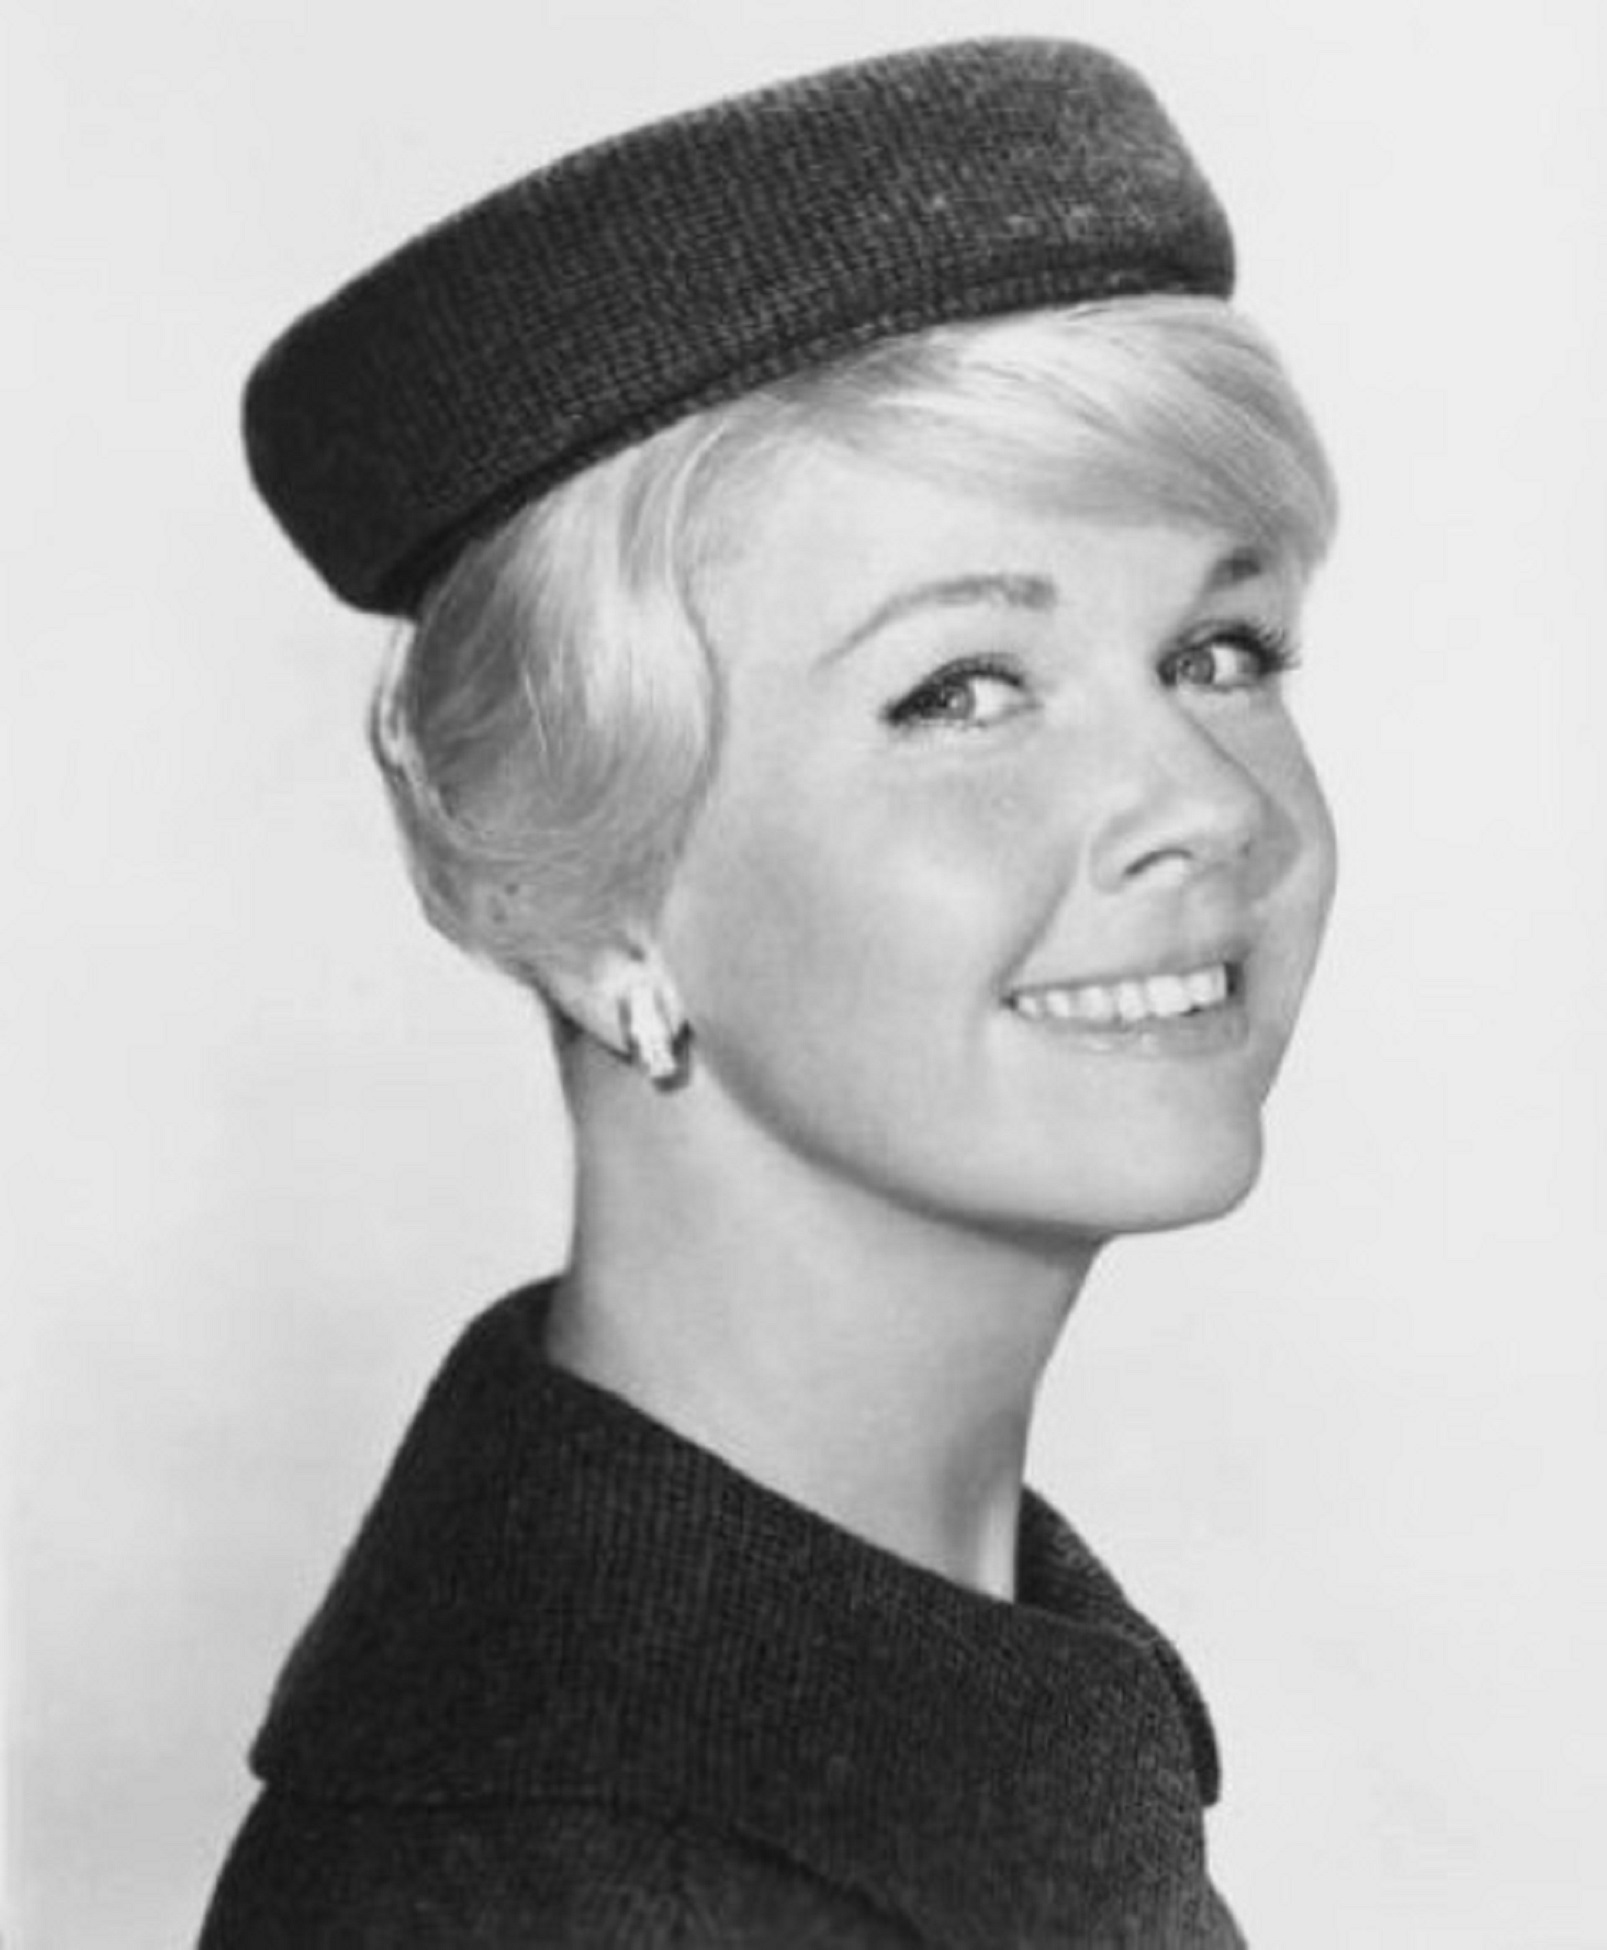 Doris Day, Producer, Television, Film, Famous, HQ Photo